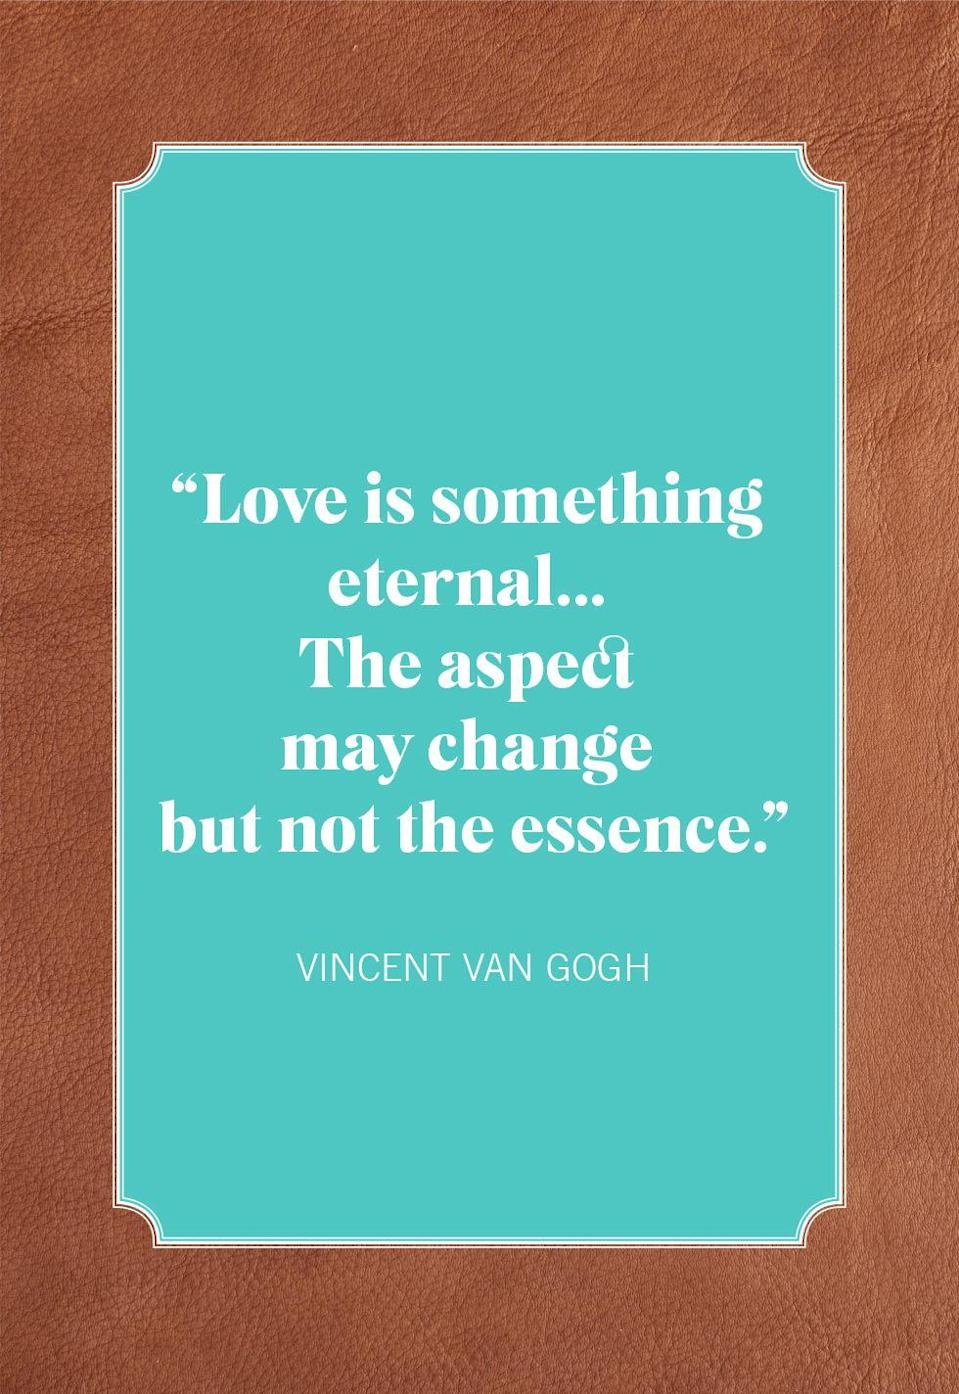 "<p>""Love is something eternal... The aspect may change but not the essence.""</p>"